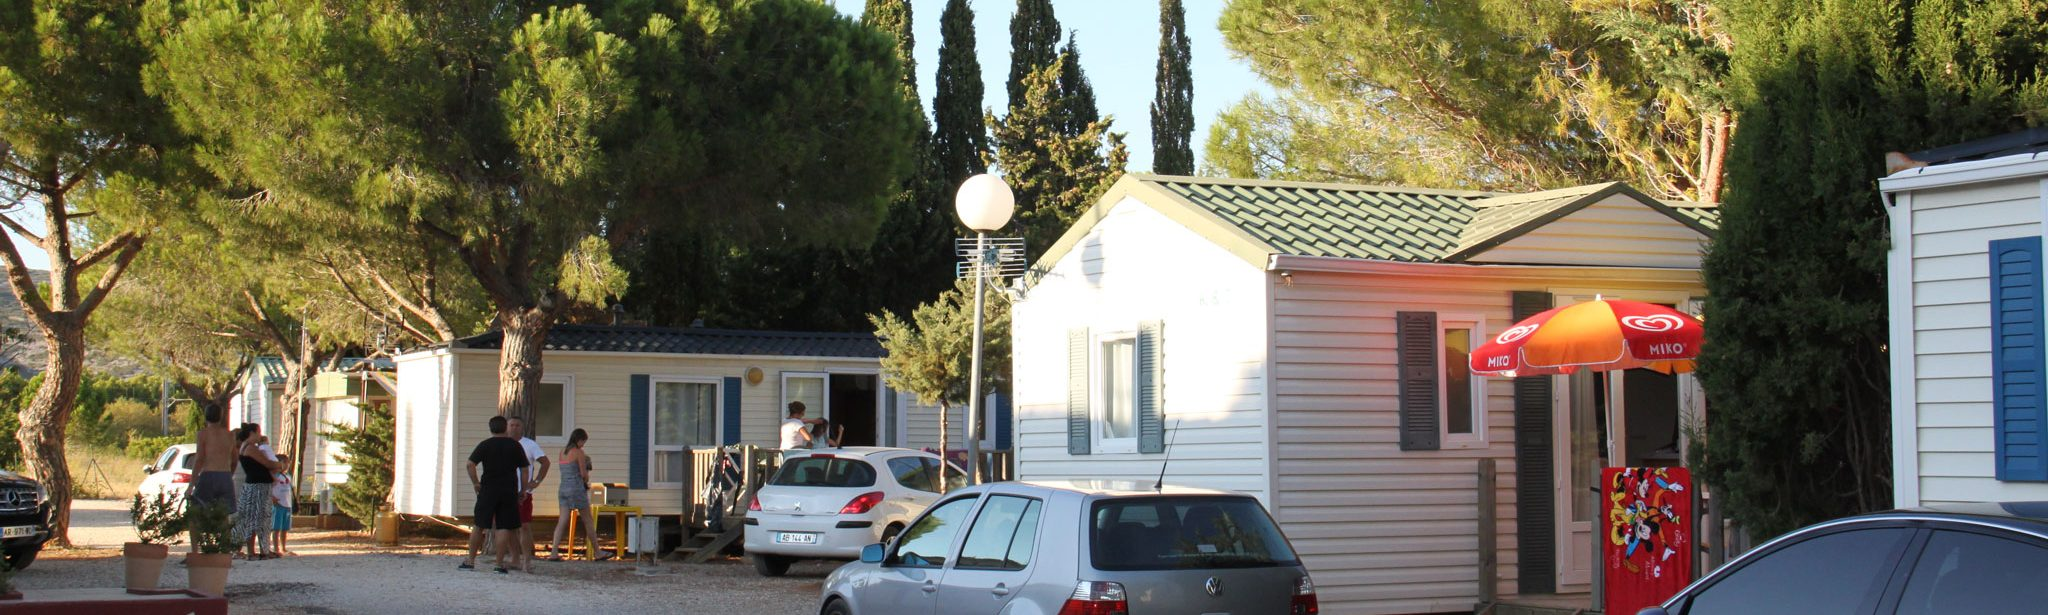 location de mobil-homes dans le Roussillon